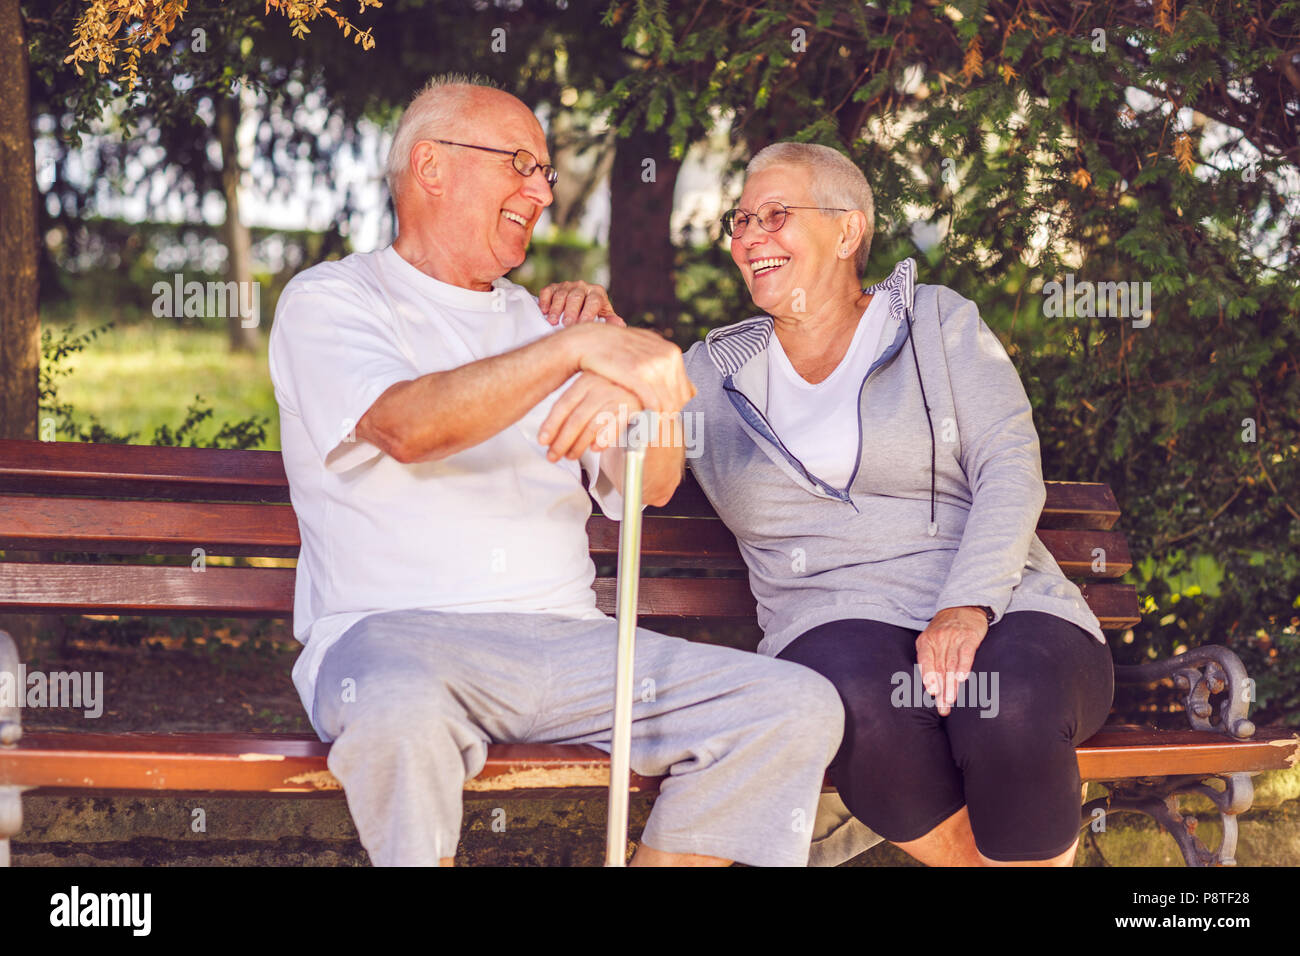 Smiling senior couple sitting together on a park bench - Stock Image